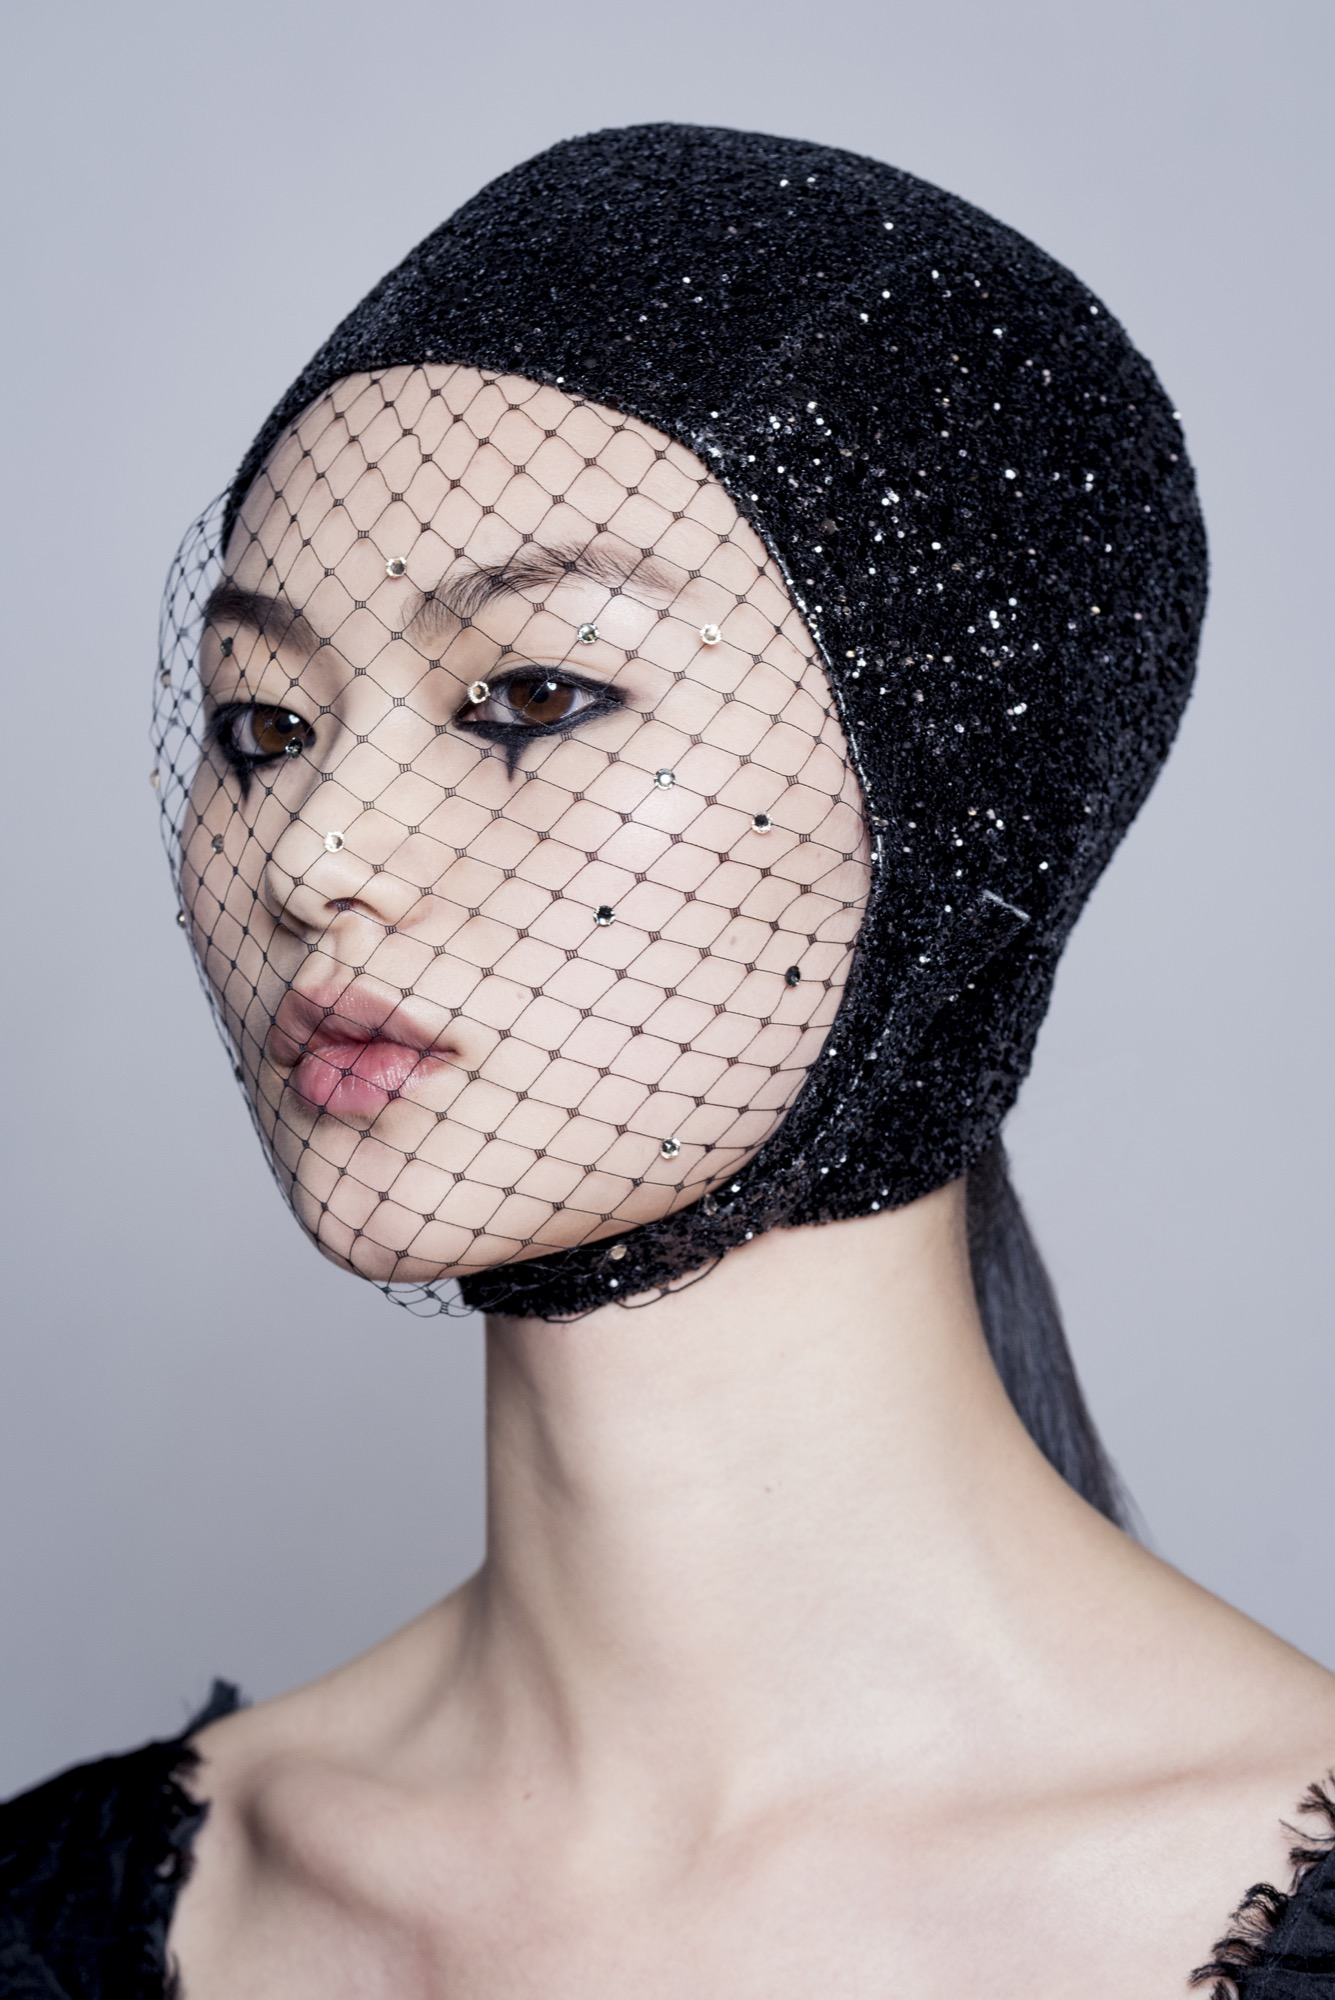 DIOR HAUTE COUTURE SPRING-SUMMER 2019 COLLECTION